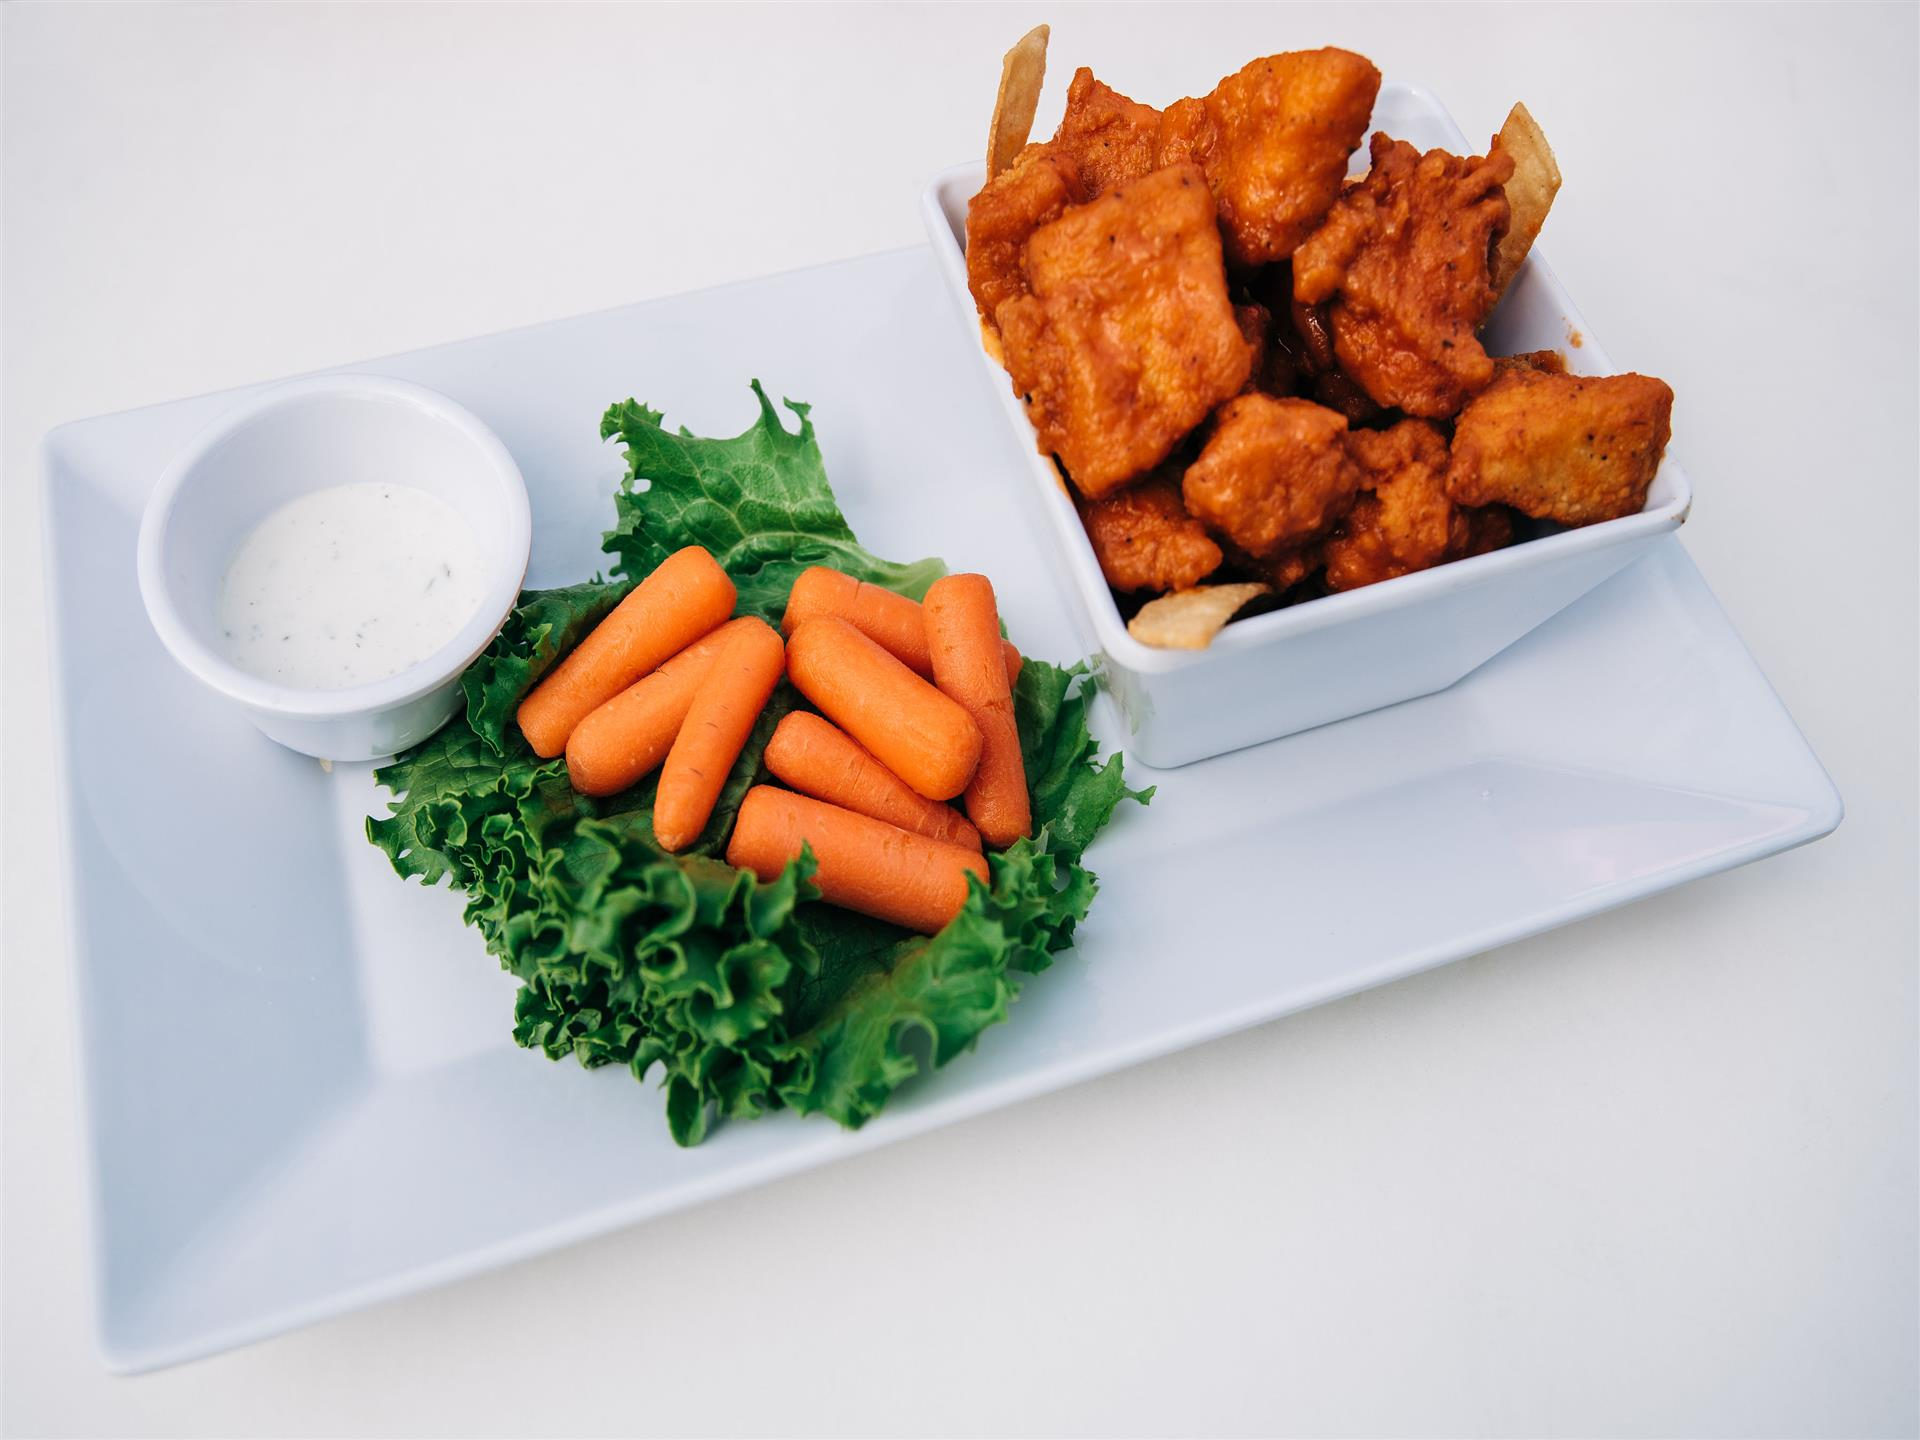 Fried seafood served with a side of carrots and dipping sauce